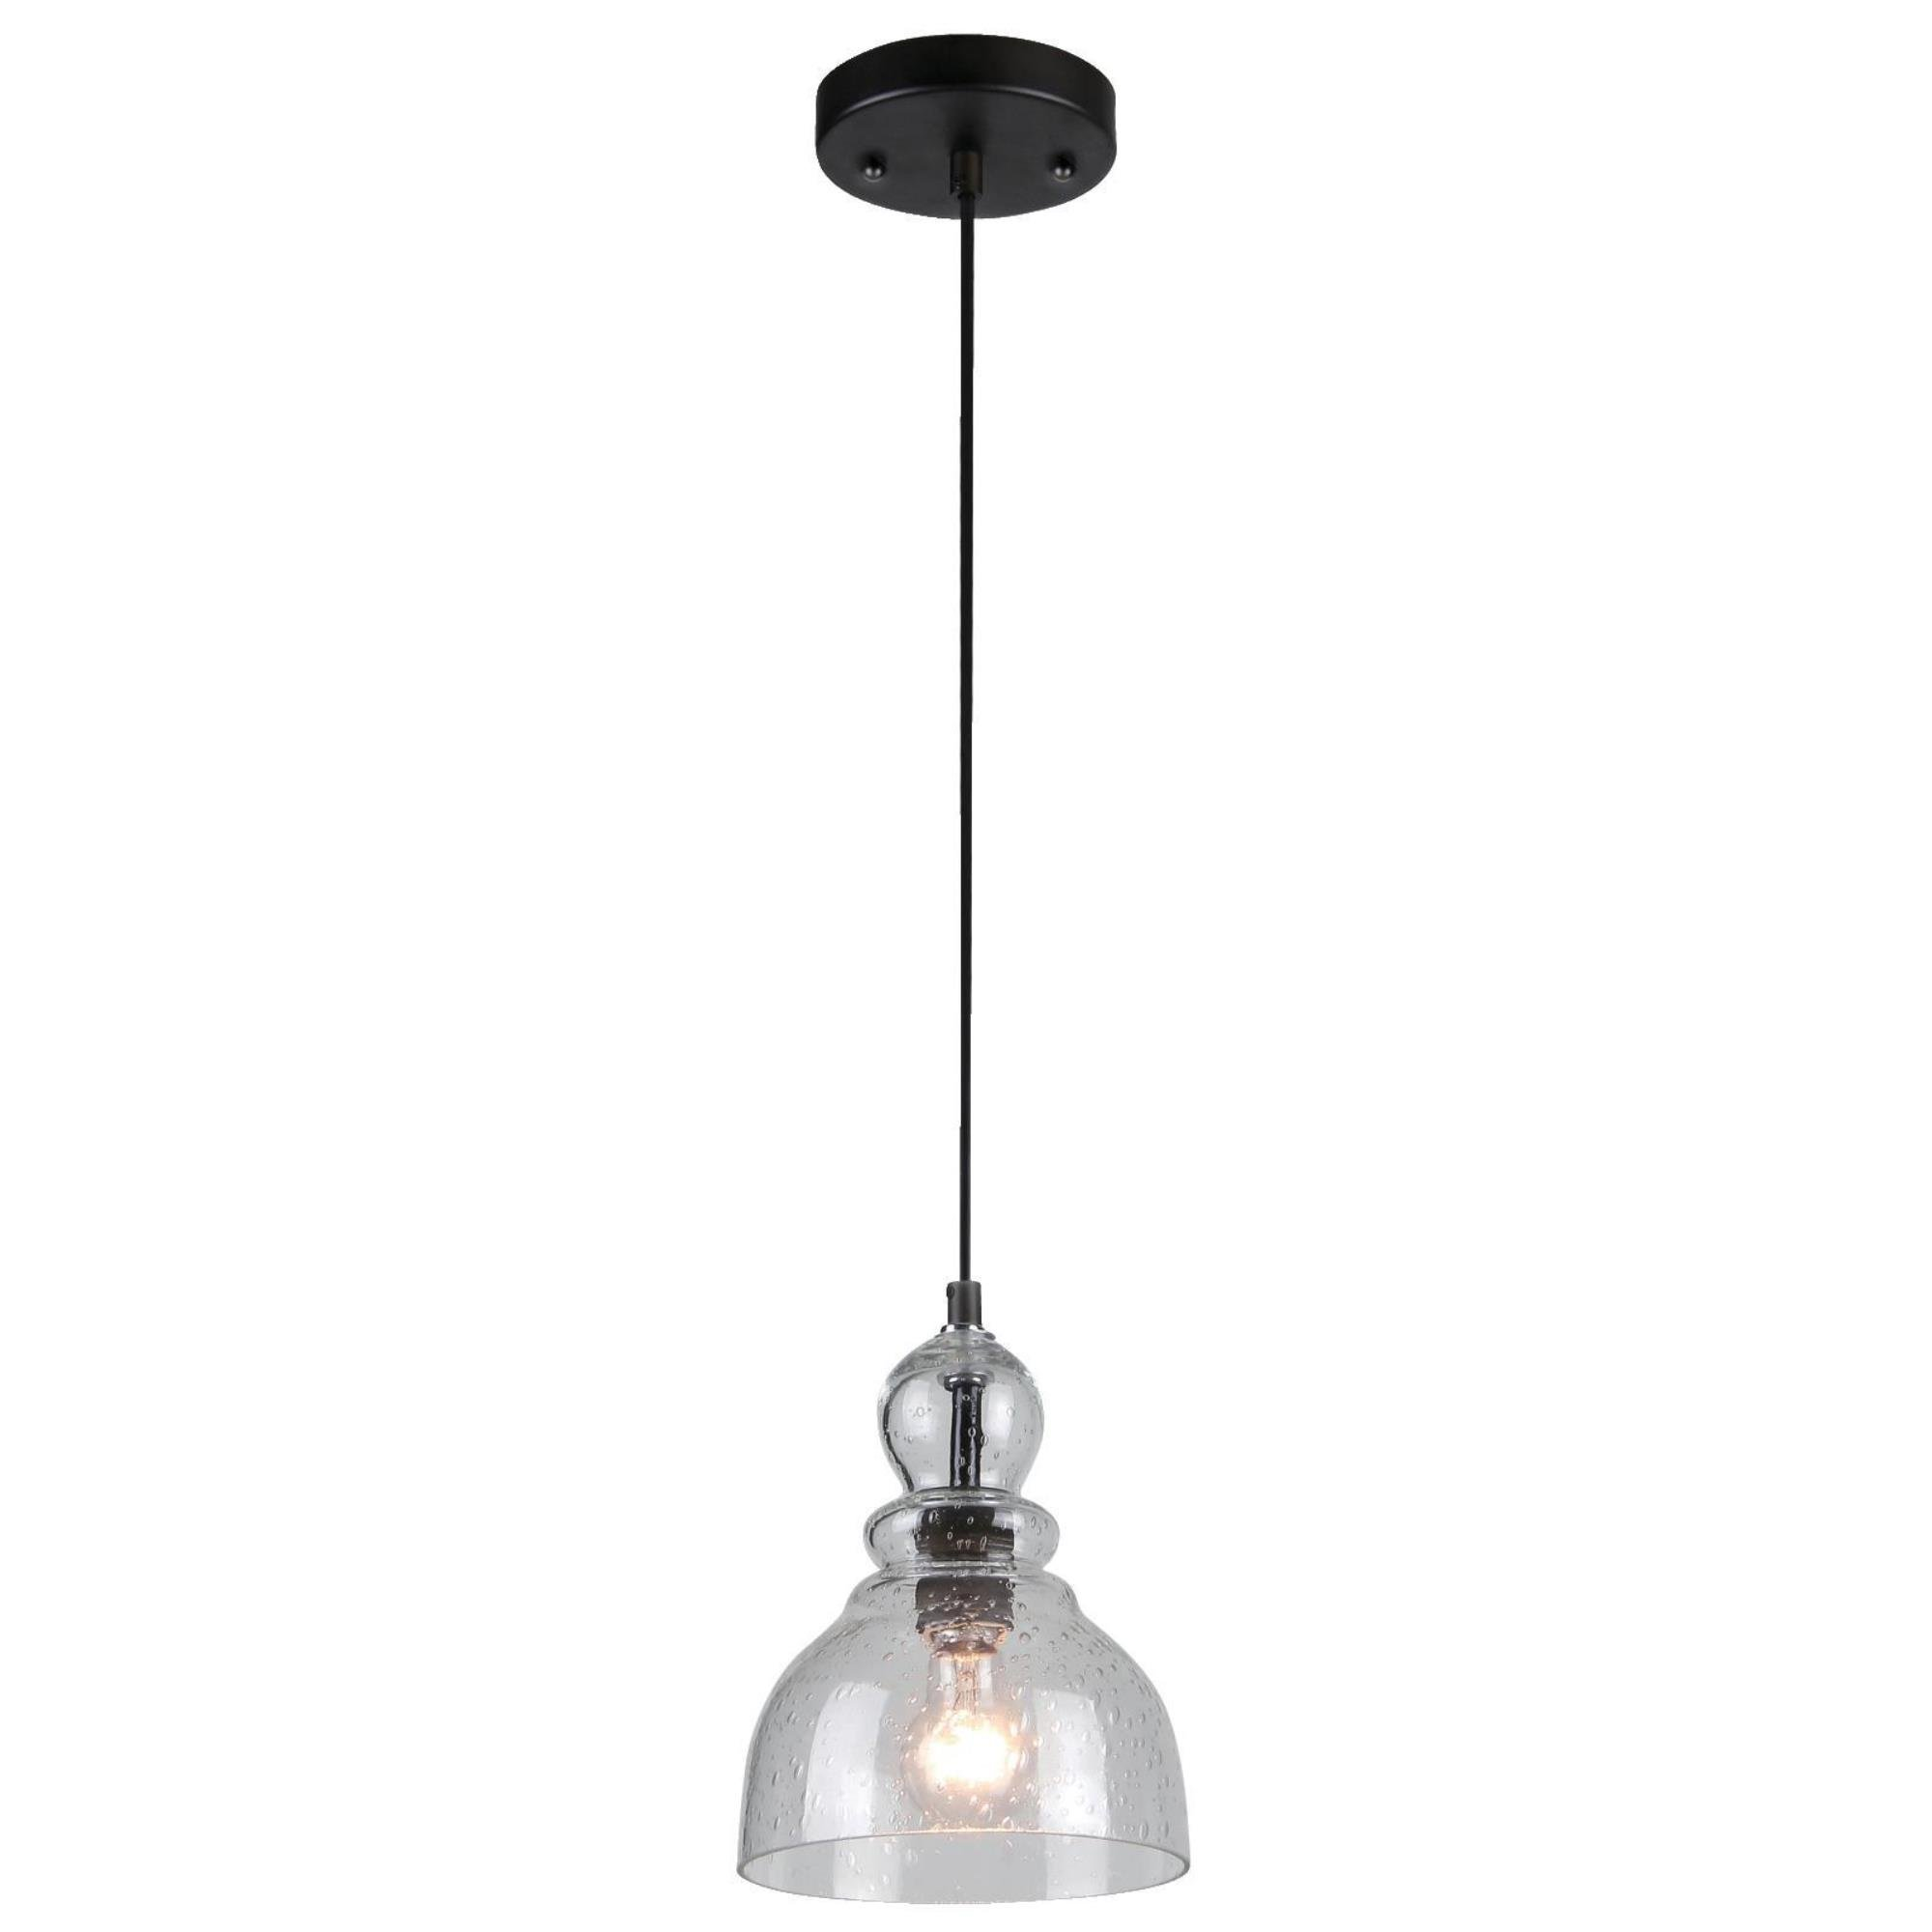 Westinghouse 6100800 One-Light Indoor Mini Pendant, Oil Rubbed Bronze Finish with Clear Seeded Glass by Westinghouse Lighting (Image #1)